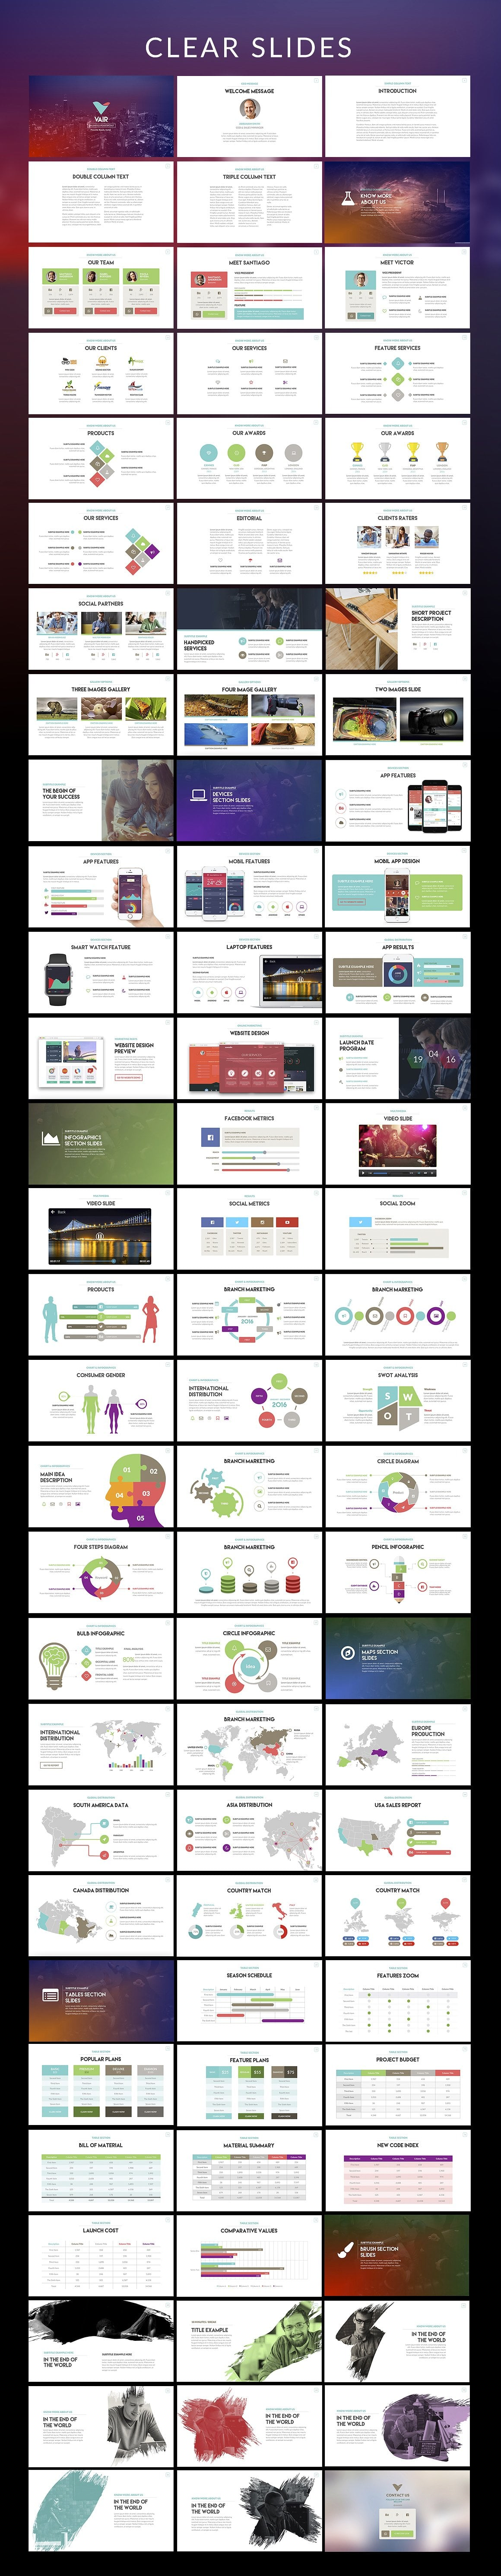 20 Powerpoint Templates with 81% OFF - Vair 02